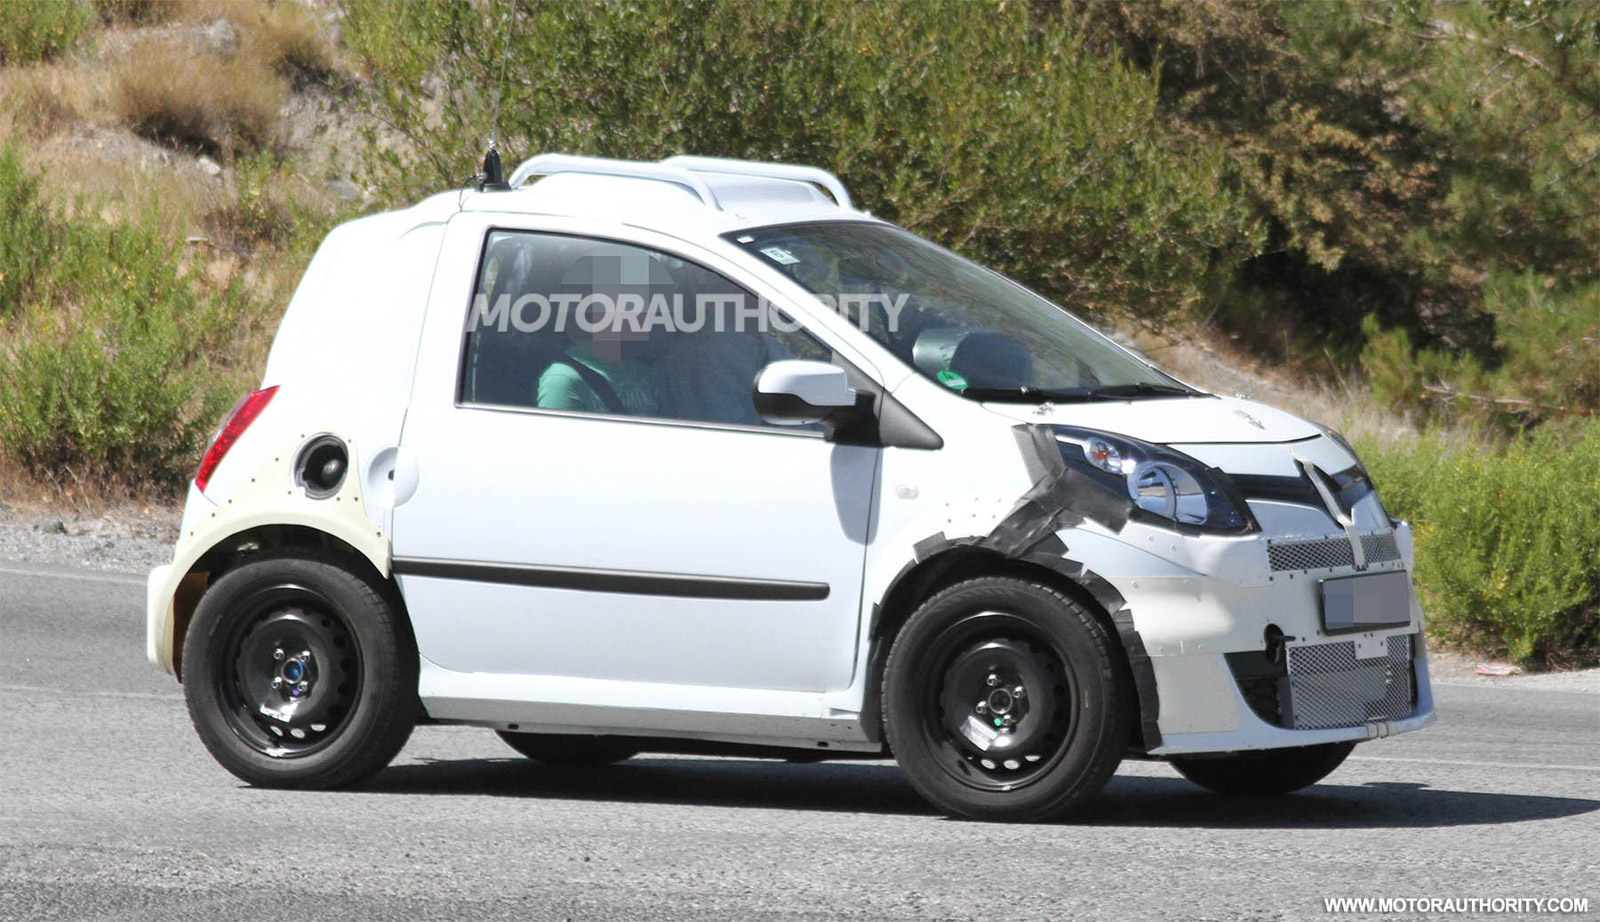 New Smart Fortwo And Forfour Models Will Be Developed With